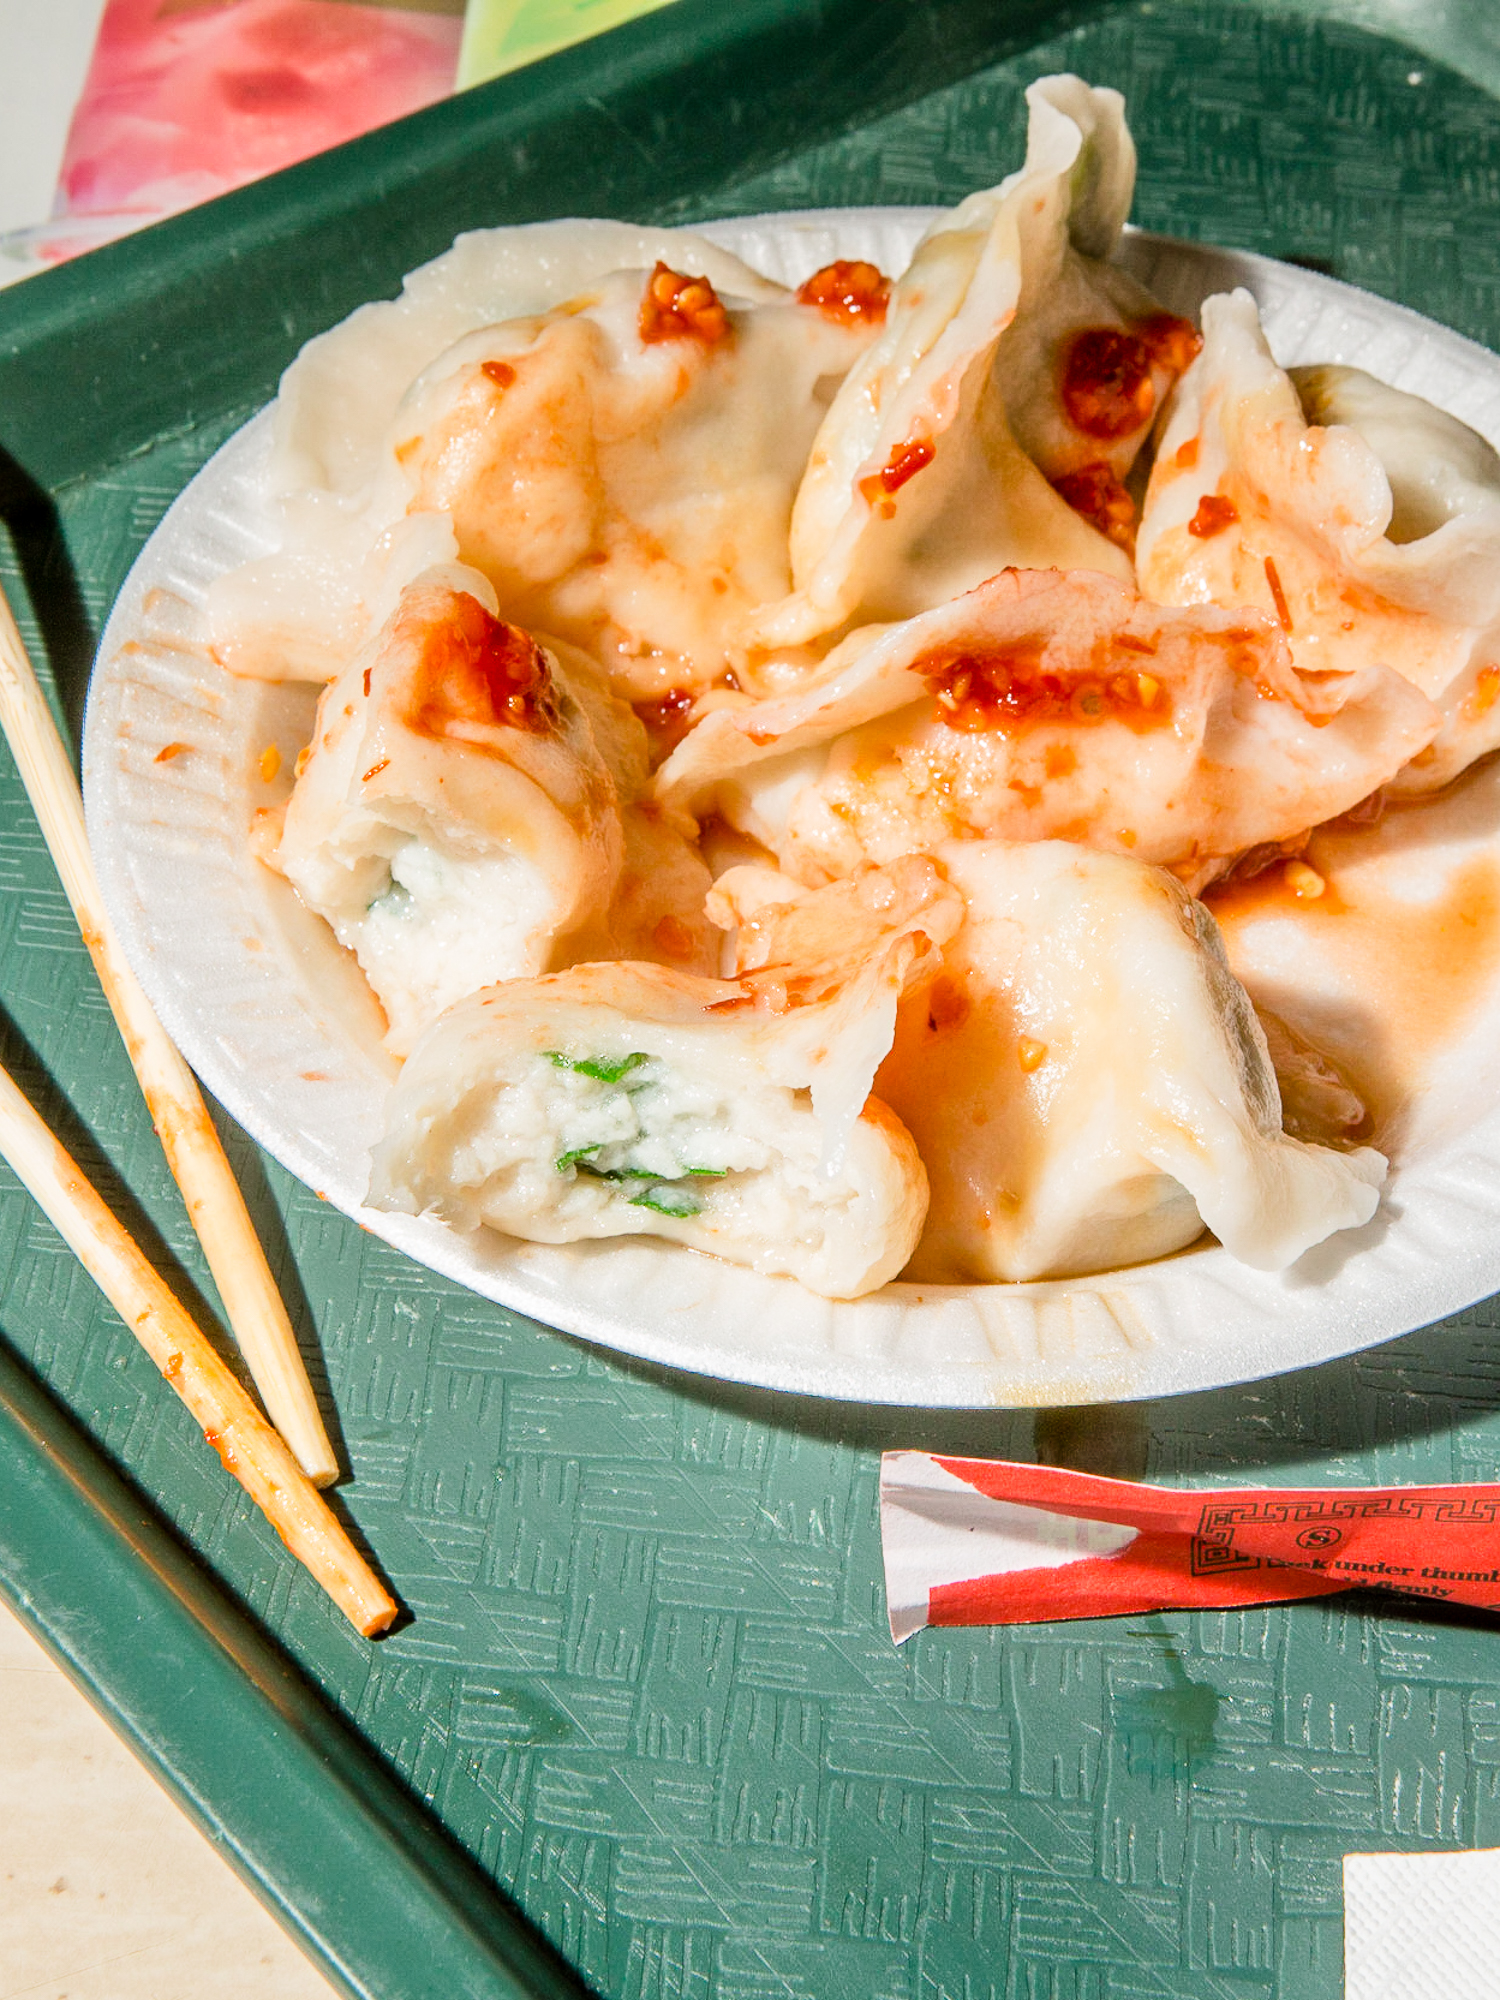 Fish dumplings at New World Mall Food Court in Flushing